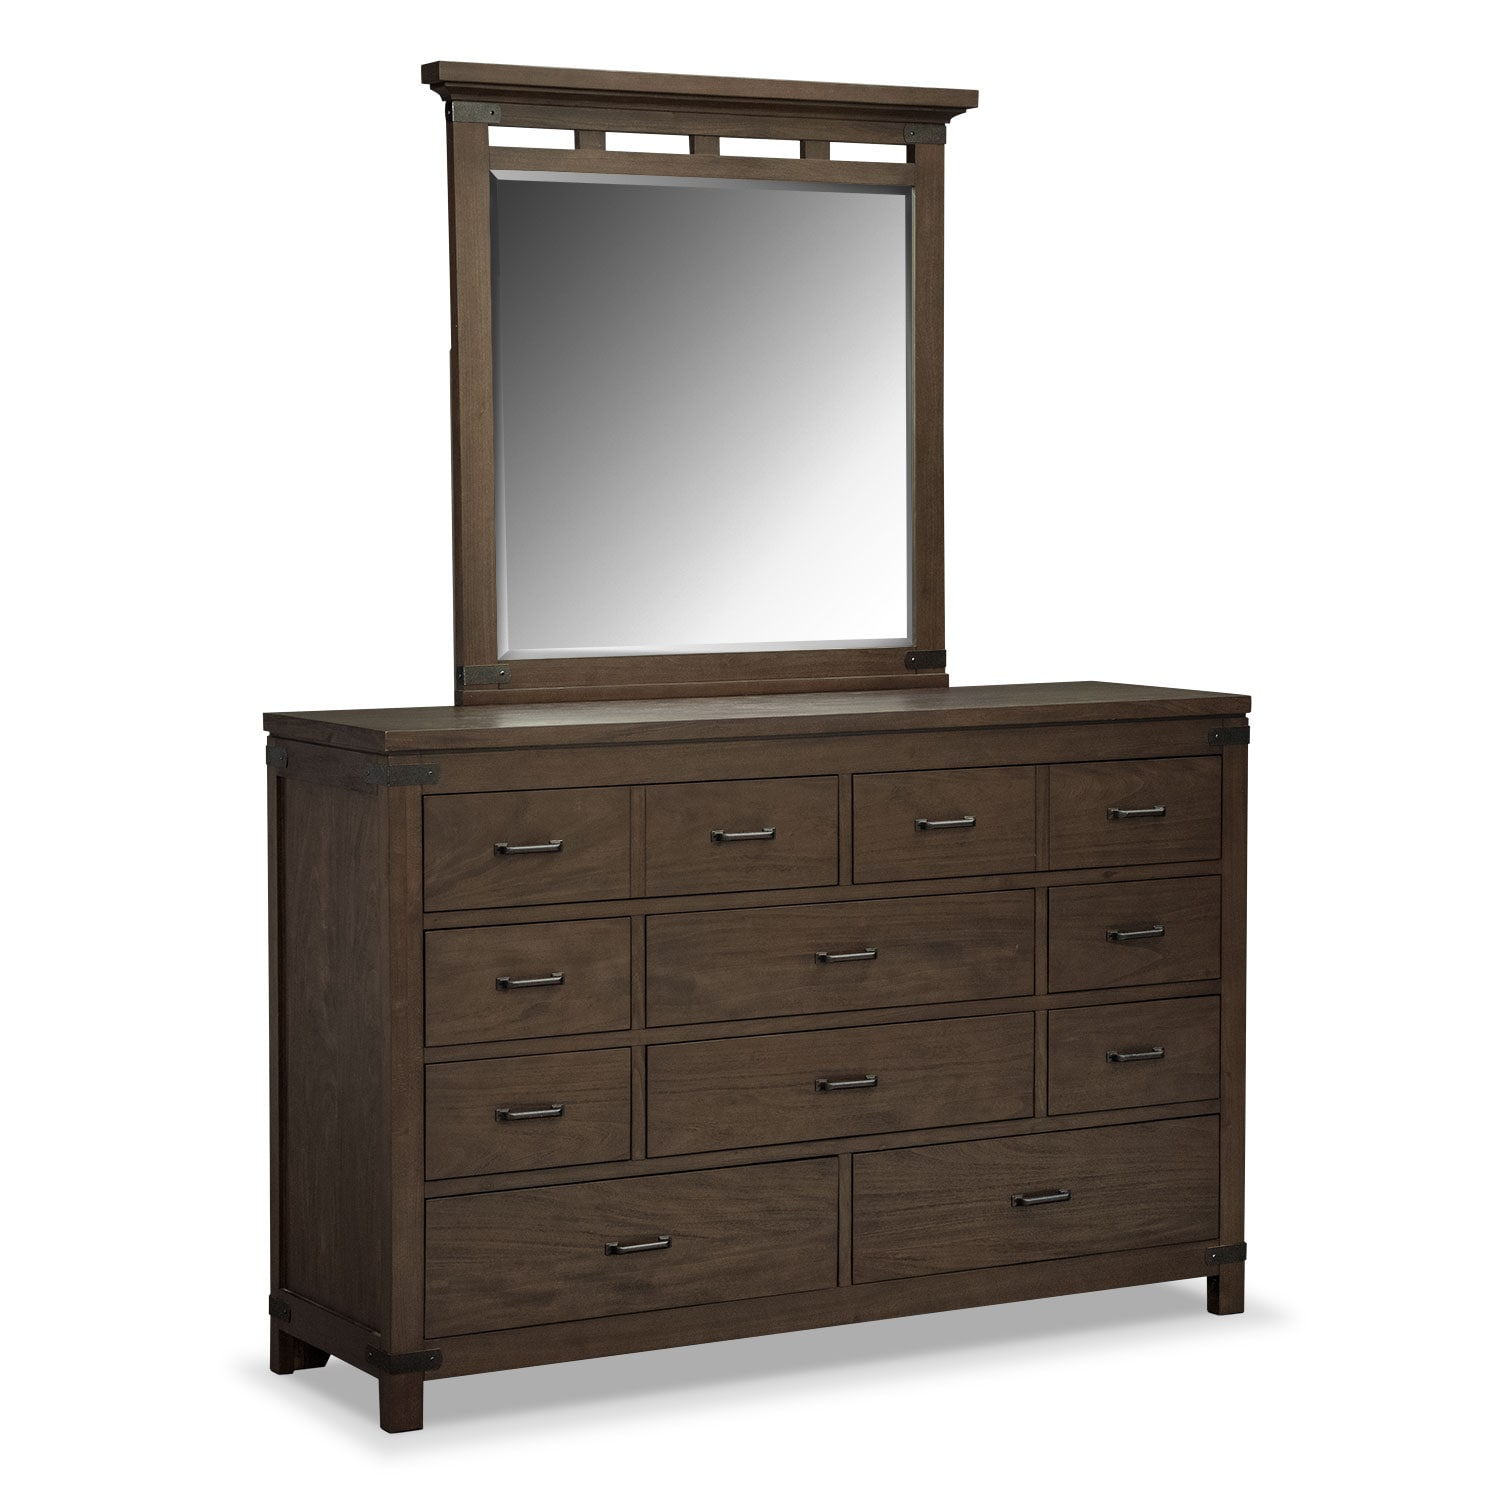 Bedroom Furniture - Camryn Dresser and Mirror Set - Cocoa